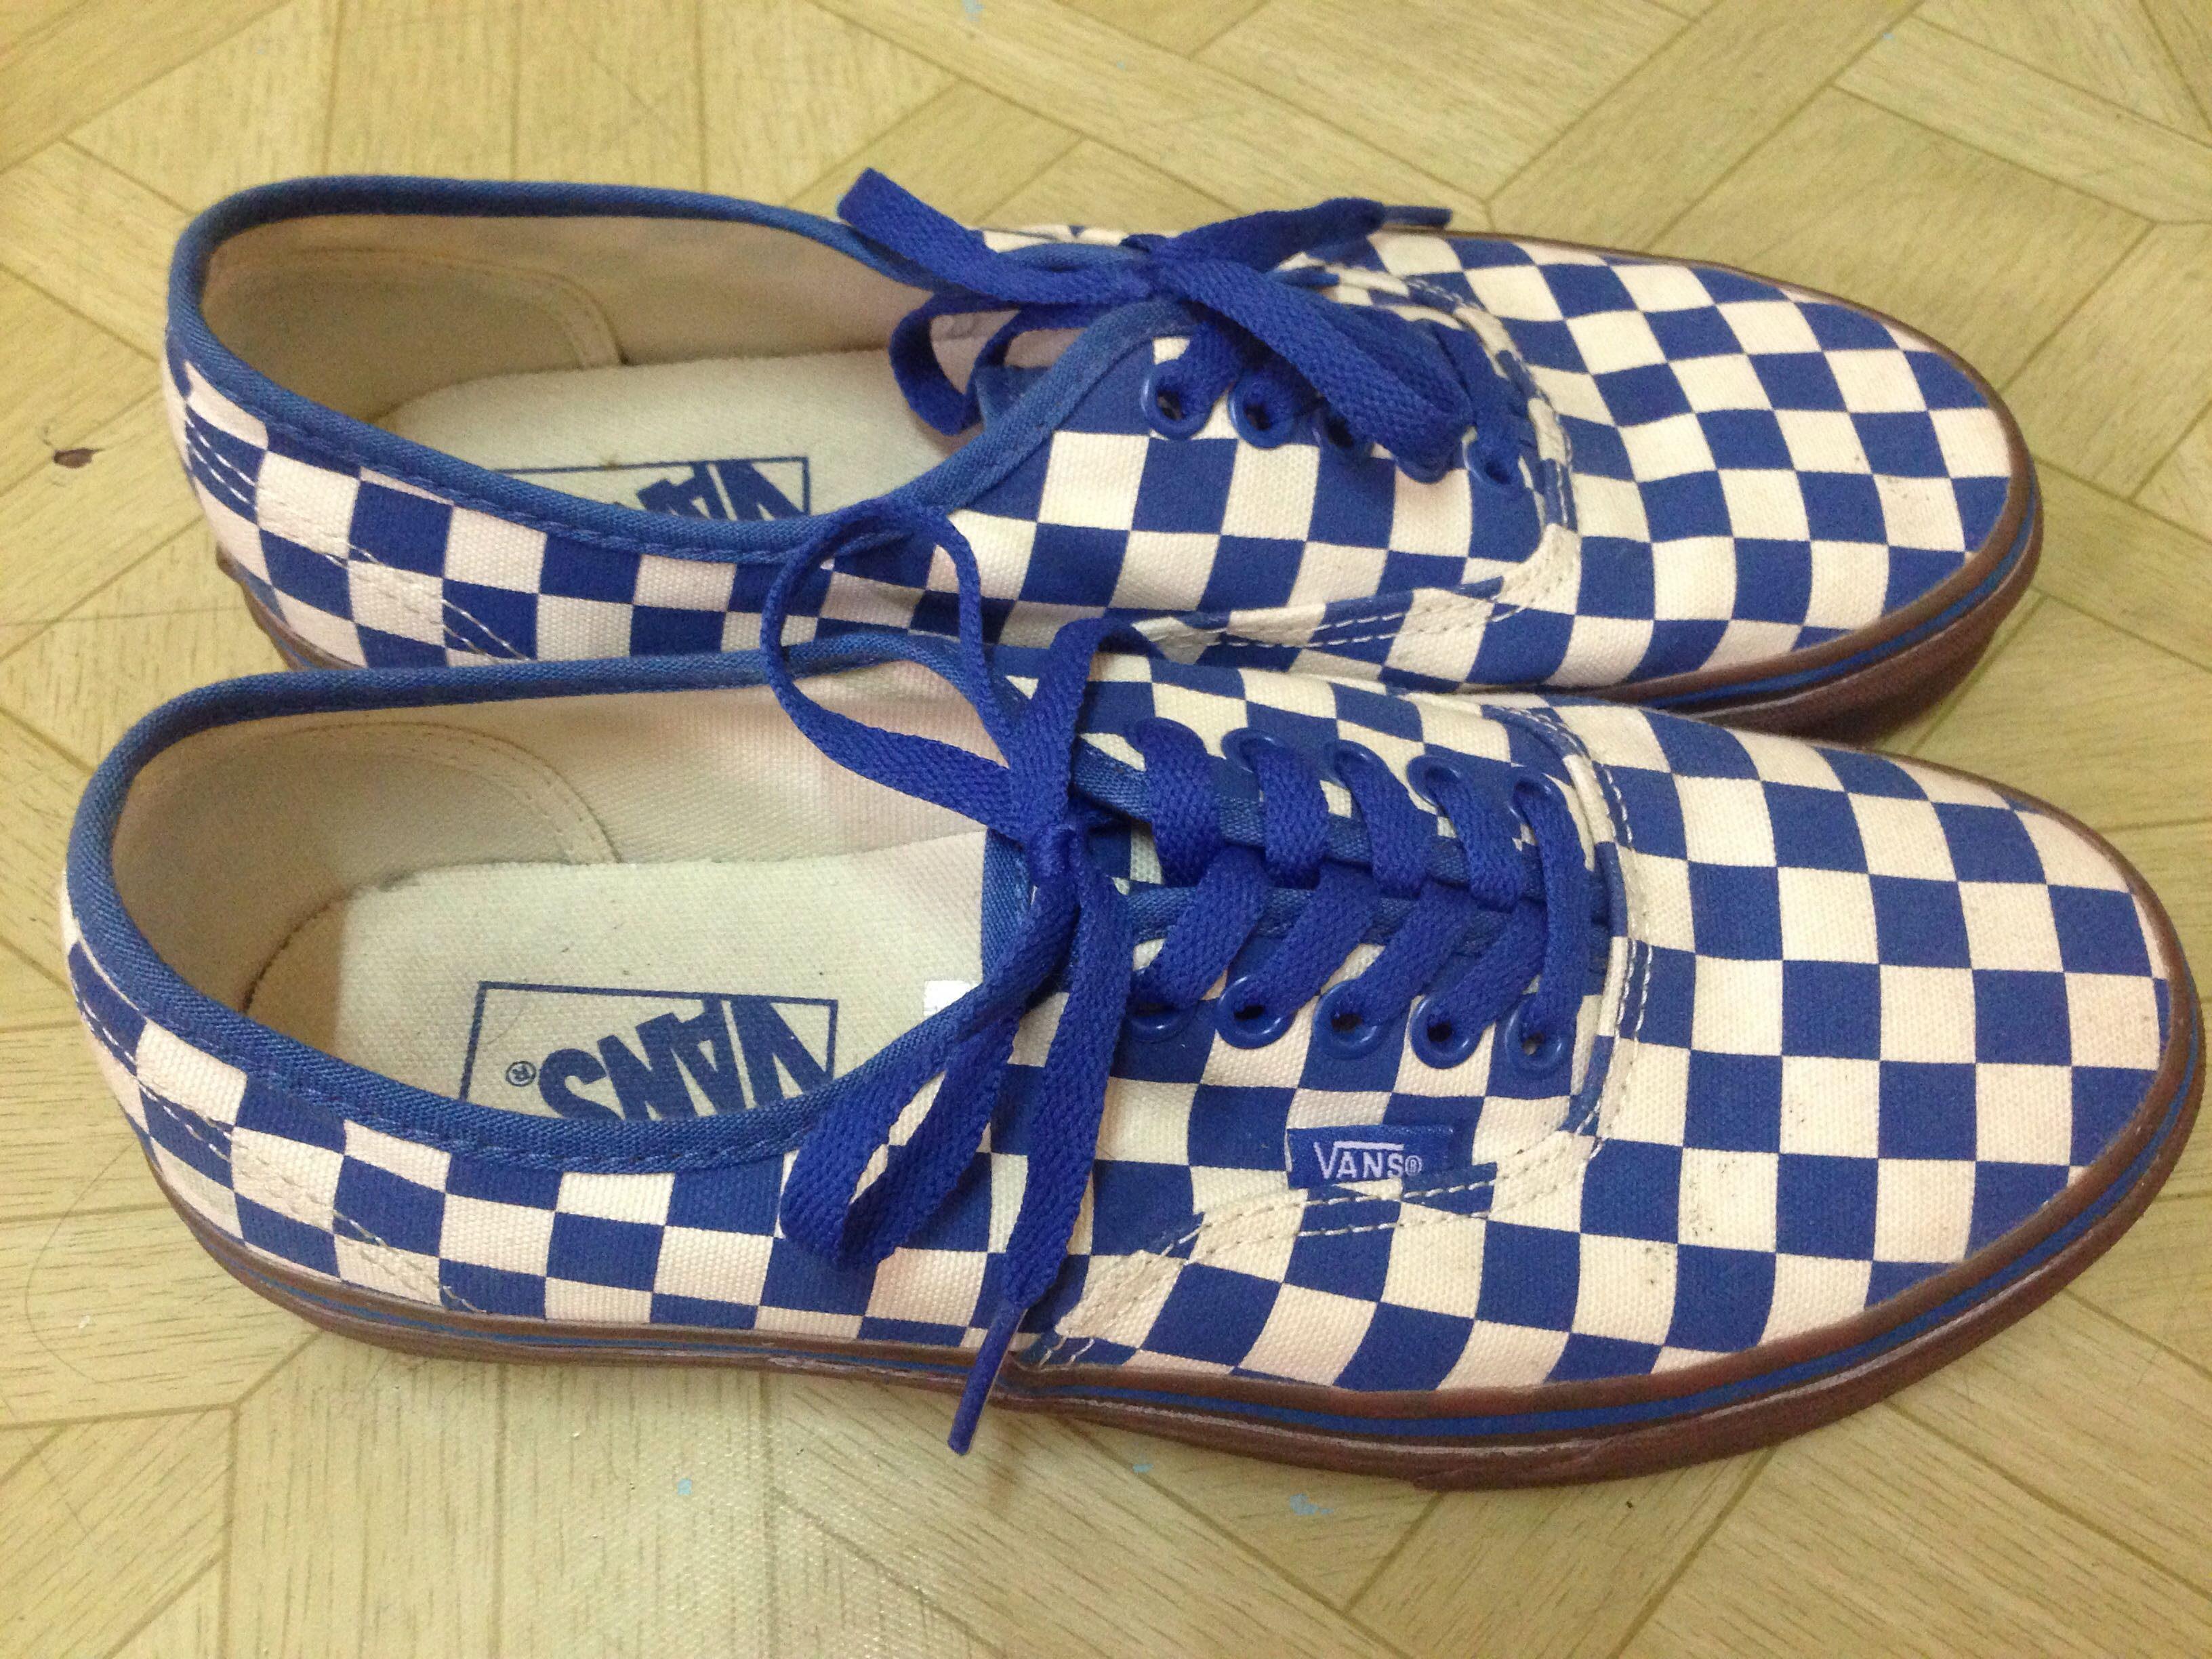 c9a48aeb7e Vans Authentic Checkerboard Gumsole blue for sell. Condition 8.5 10 ...